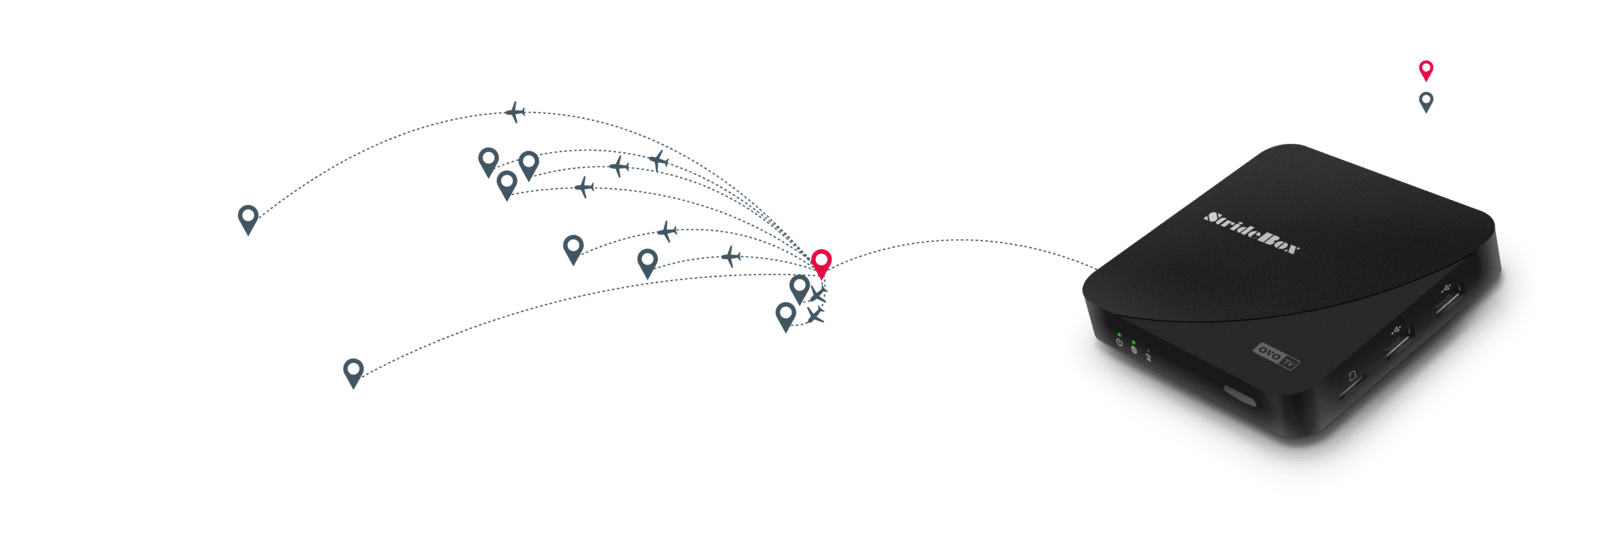 StrideBox Global Locations